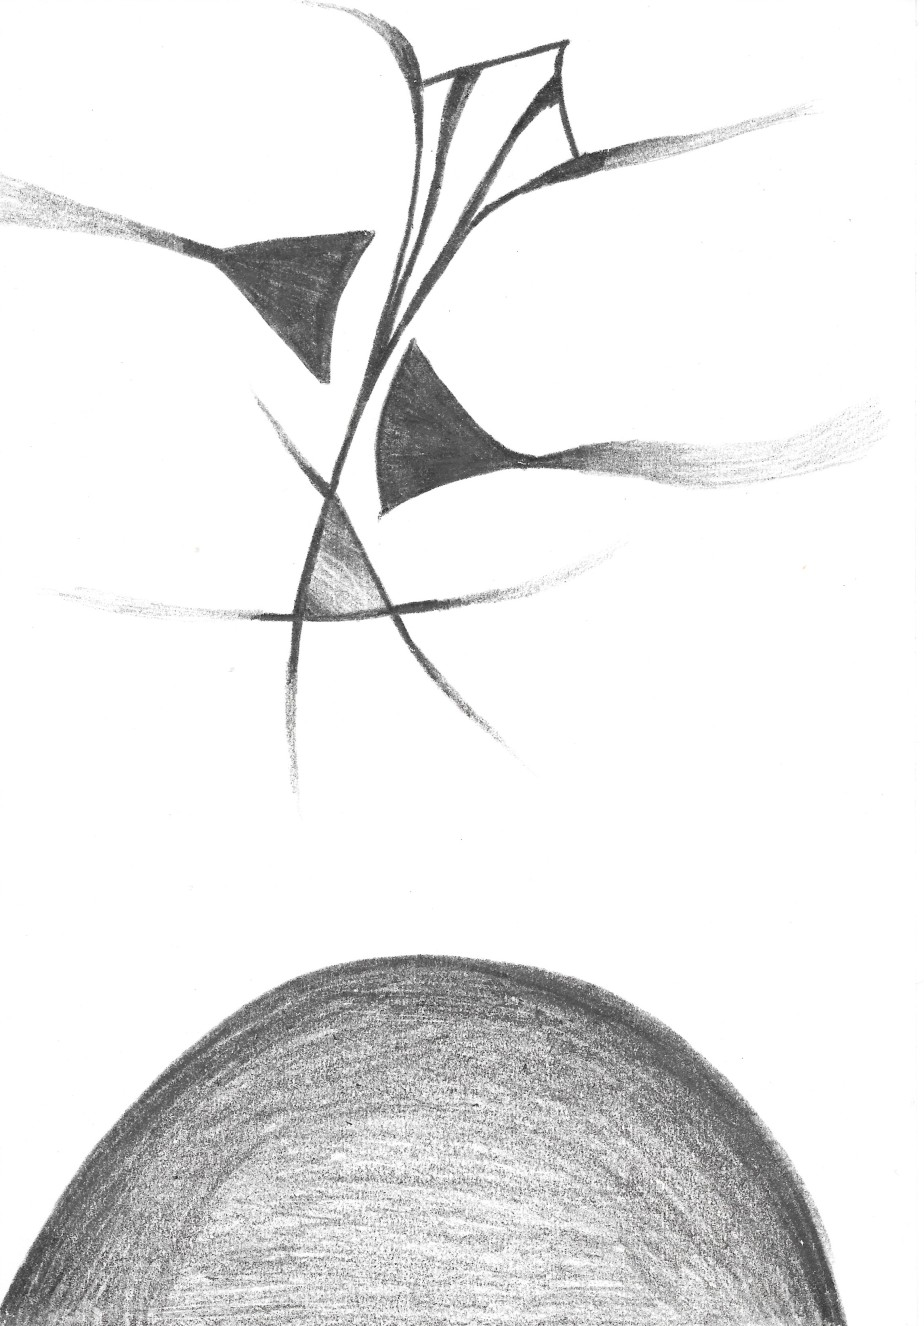 Abstract drawing in black coloured pencil with 4 kite-like abstract forms flying in a column over a black planet-like dome